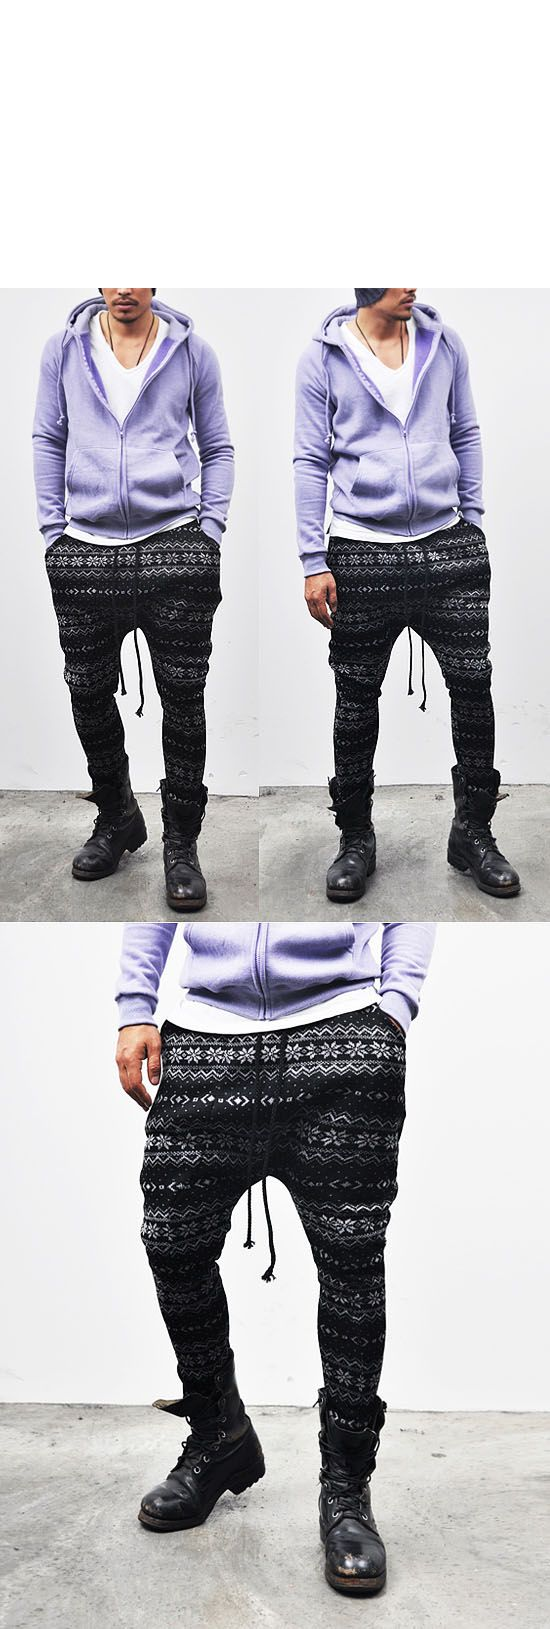 Bottoms :: Sweatpants :: Avant-garde Super Low Jacquard-Sweatpants 32 - Mens Fashion Clothing For An Attractive Guy Look